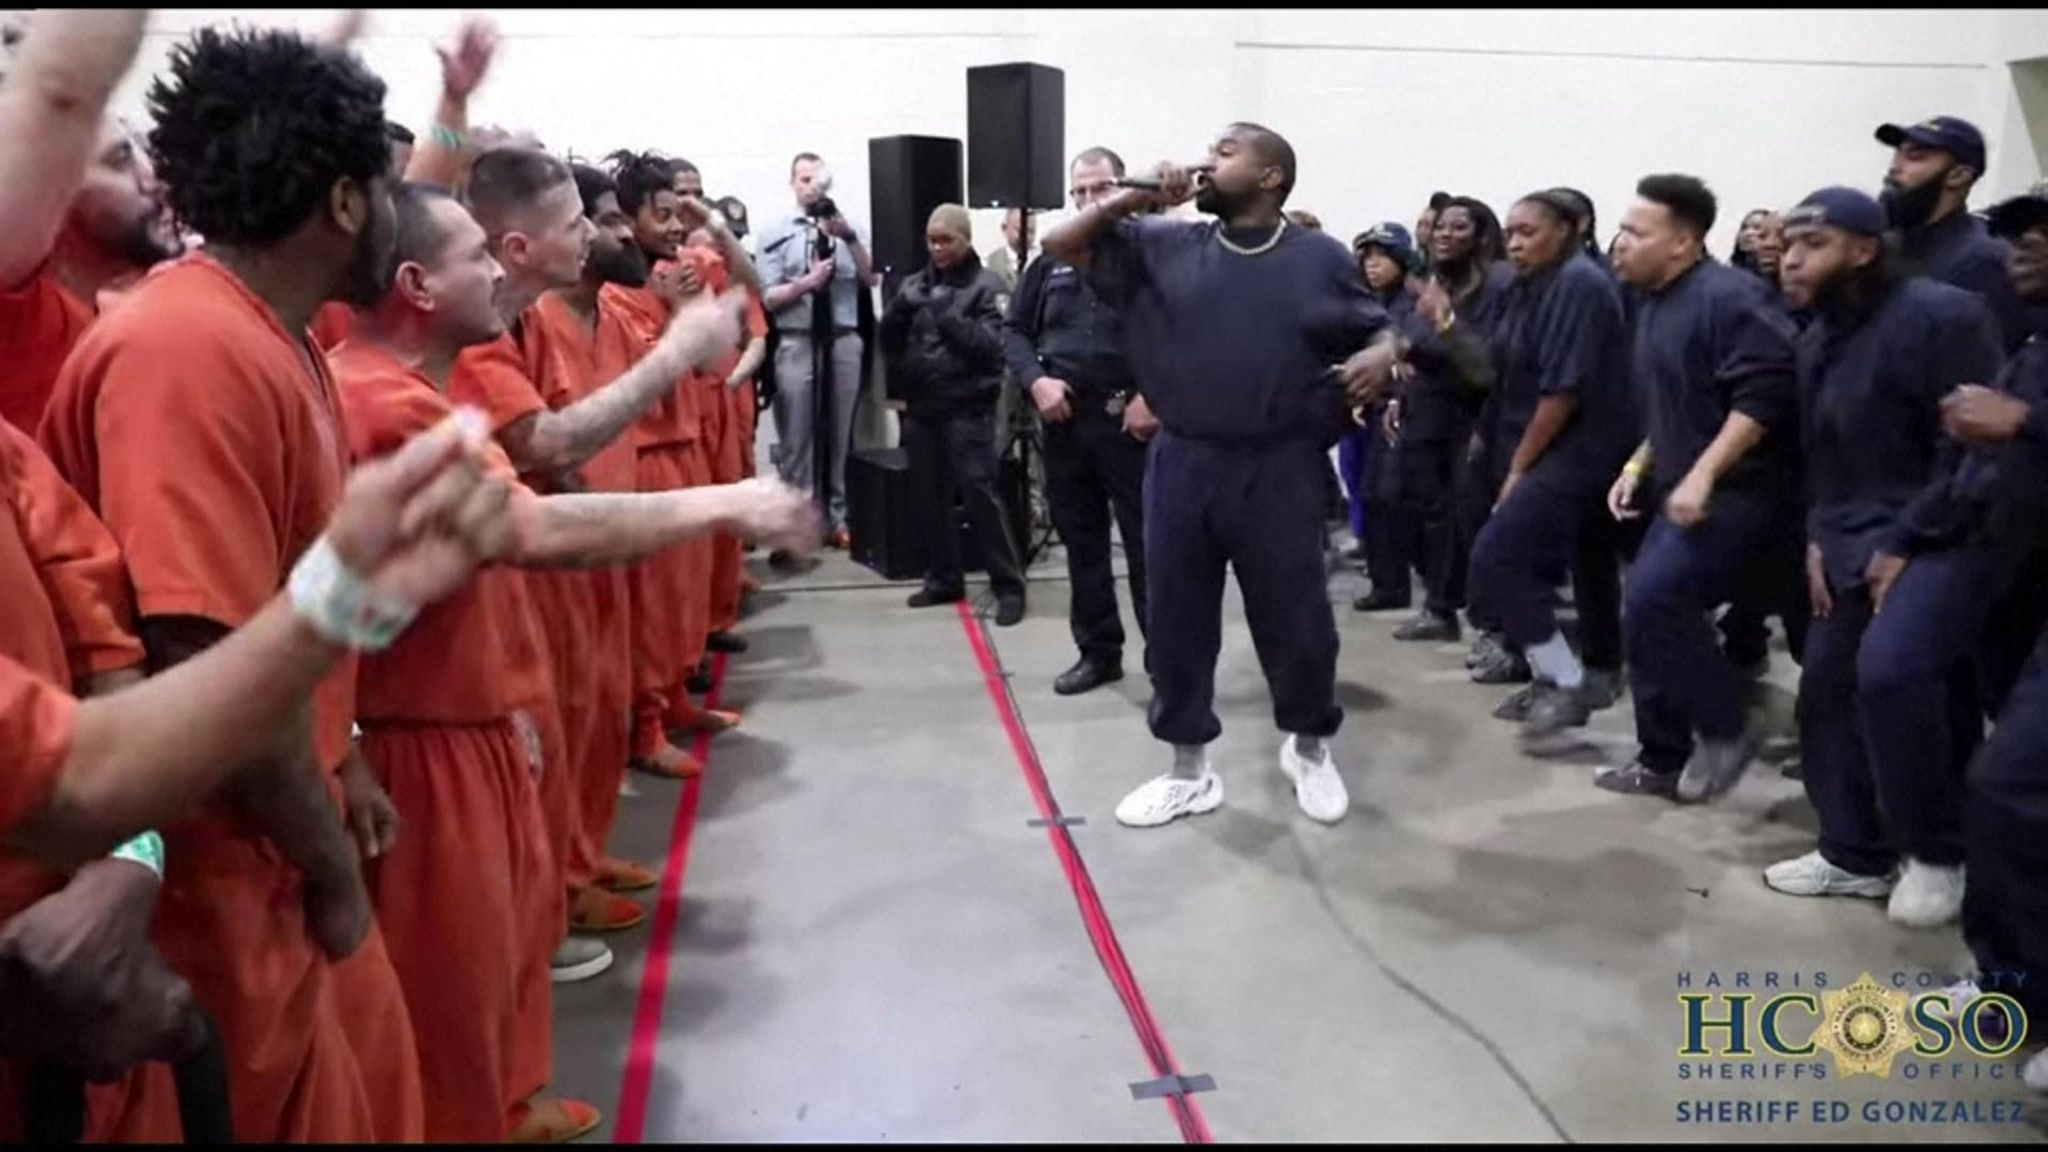 Kanye West performs songs from Jesus Is King for tearful prison inmates